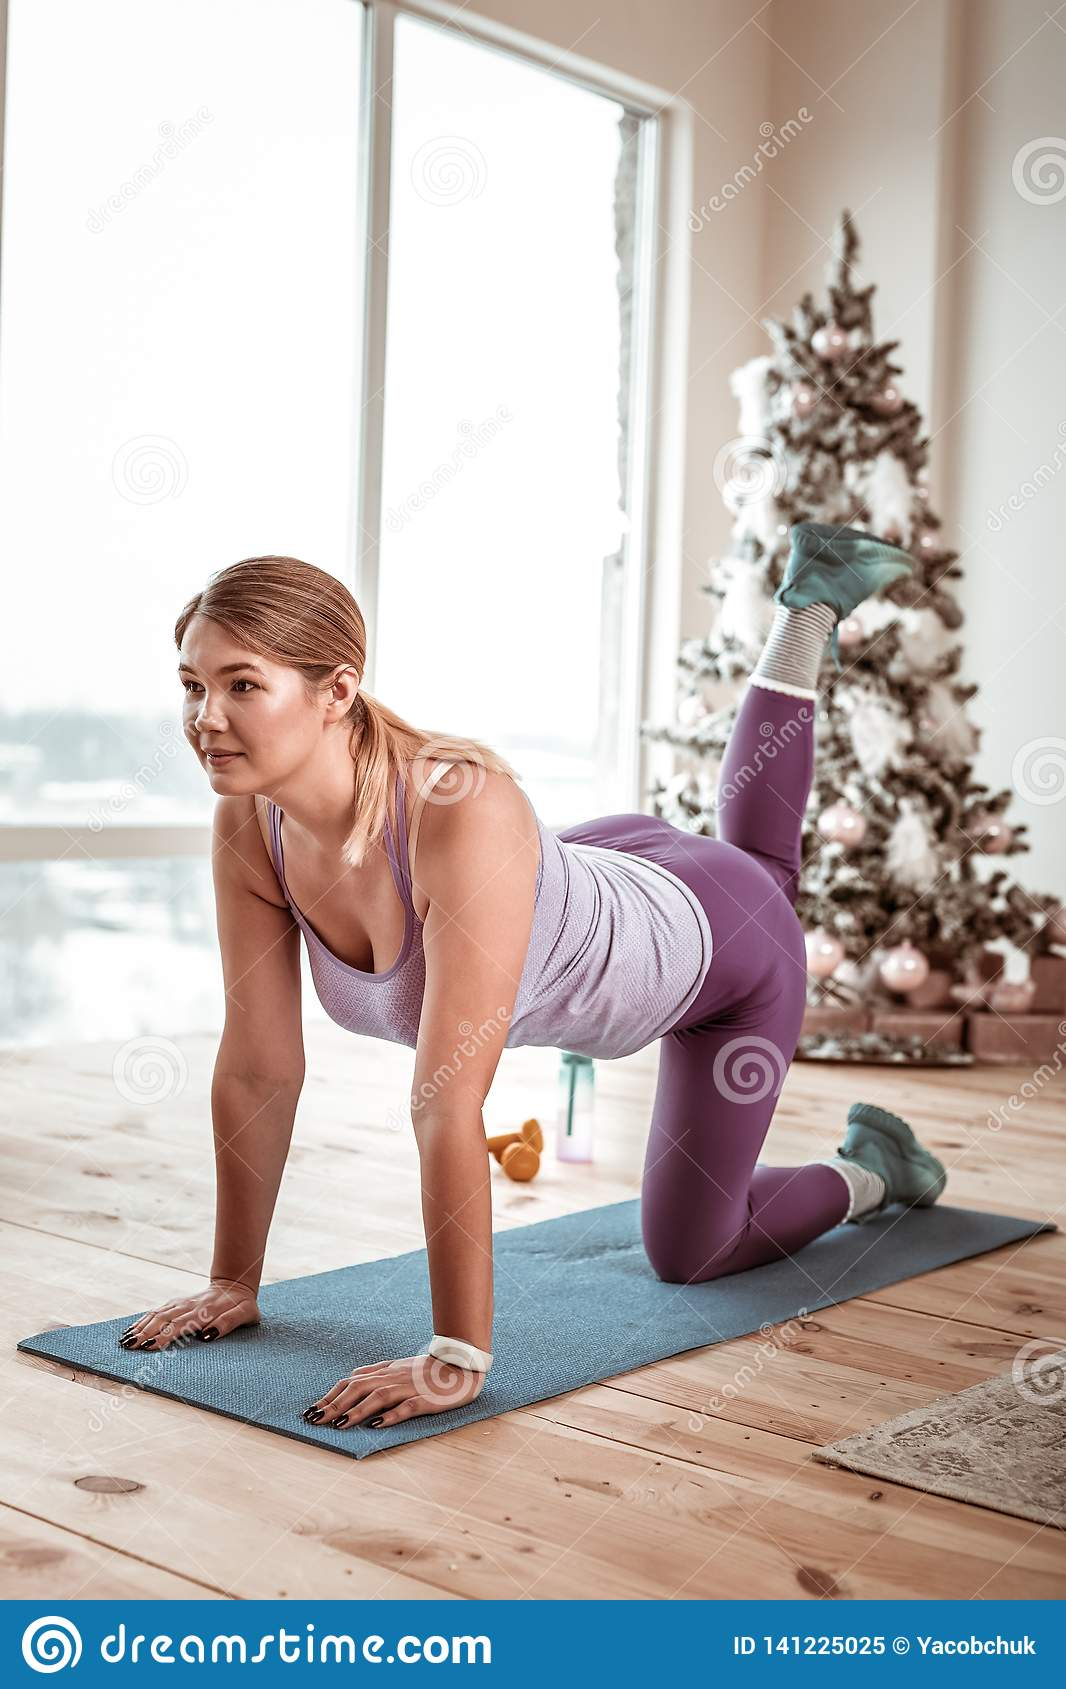 Sportive lady in violet shiny leggings doing plank on rubber mat